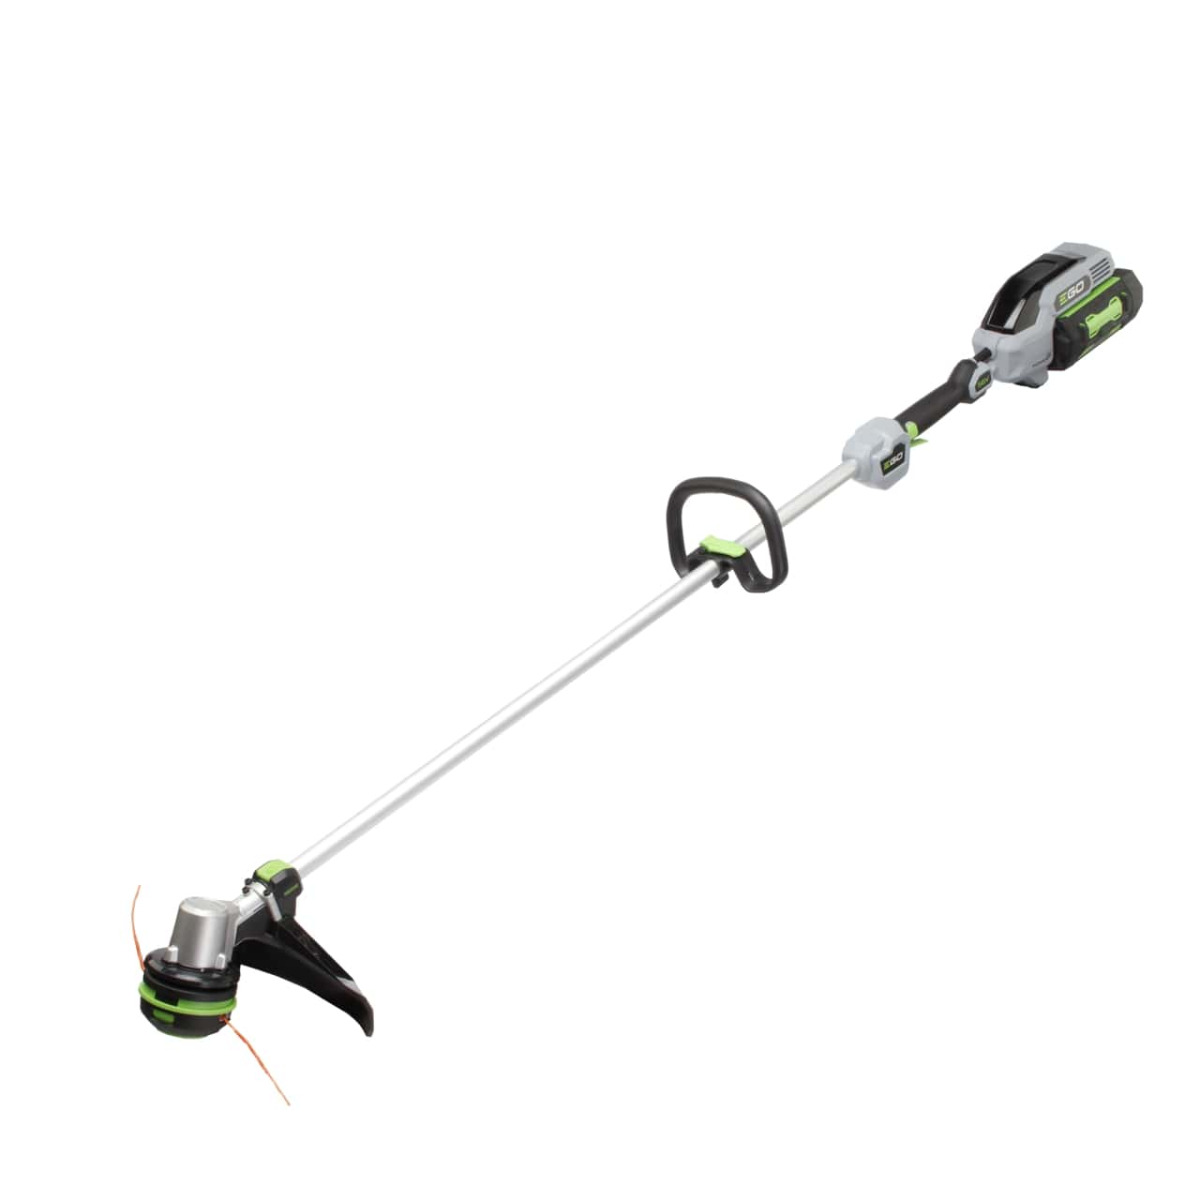 EGO ST1511E 56V Strimmer 2.5Ah Kit